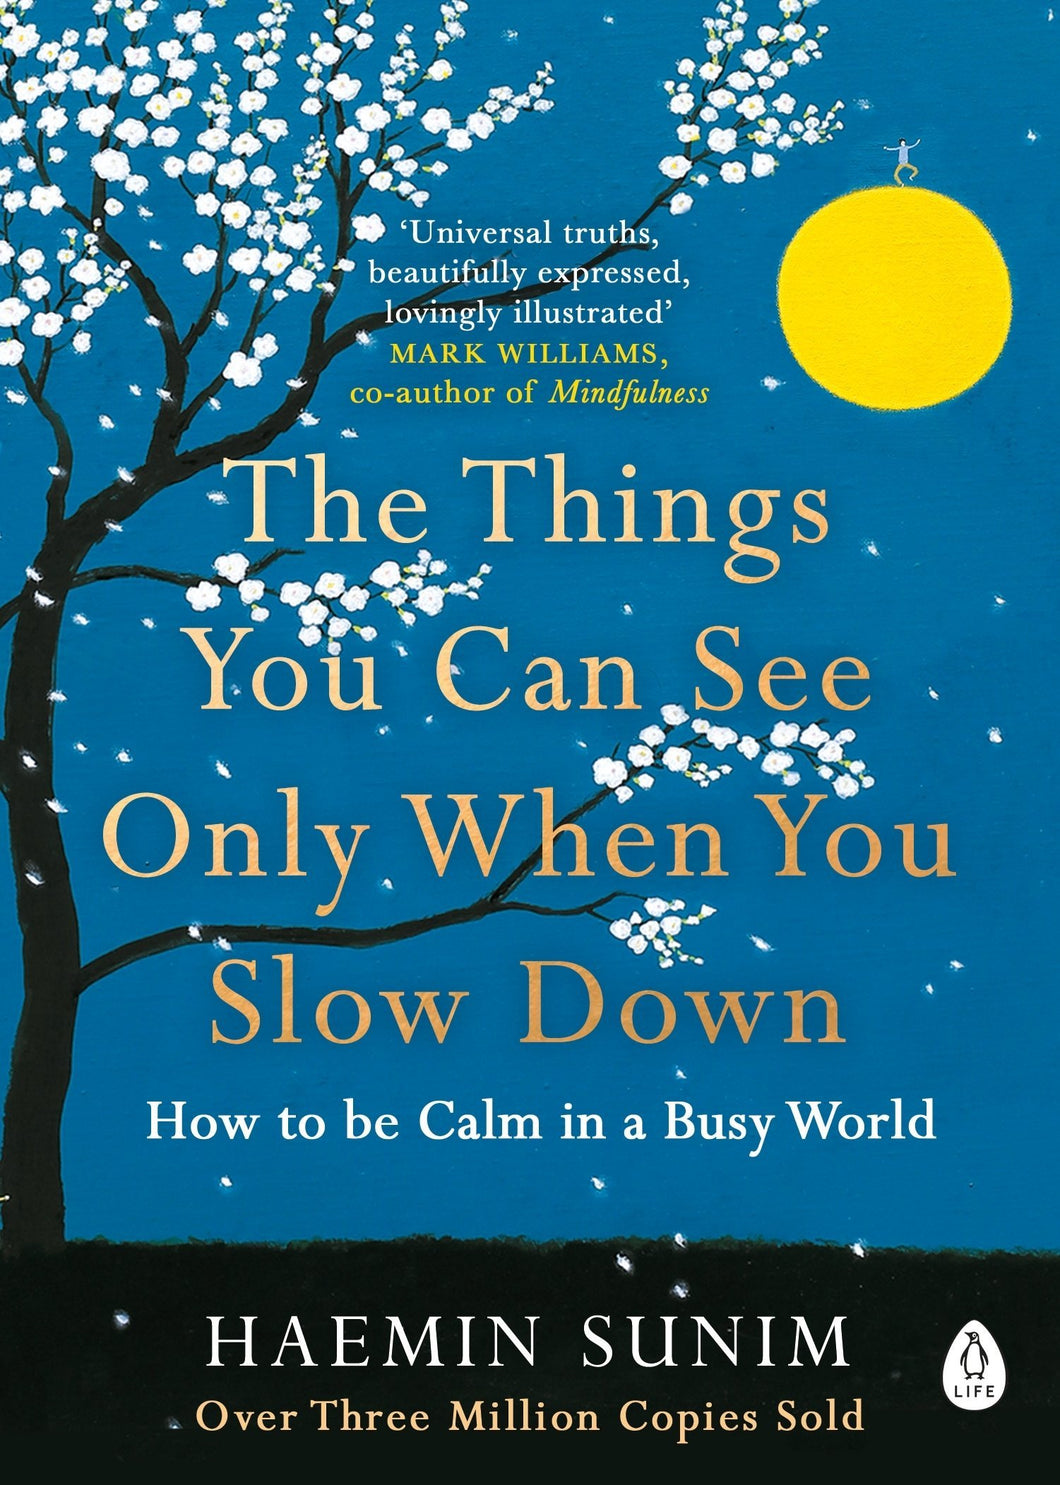 The Things You Can See Only When You Slow Down (Book by Haemin Sunim)